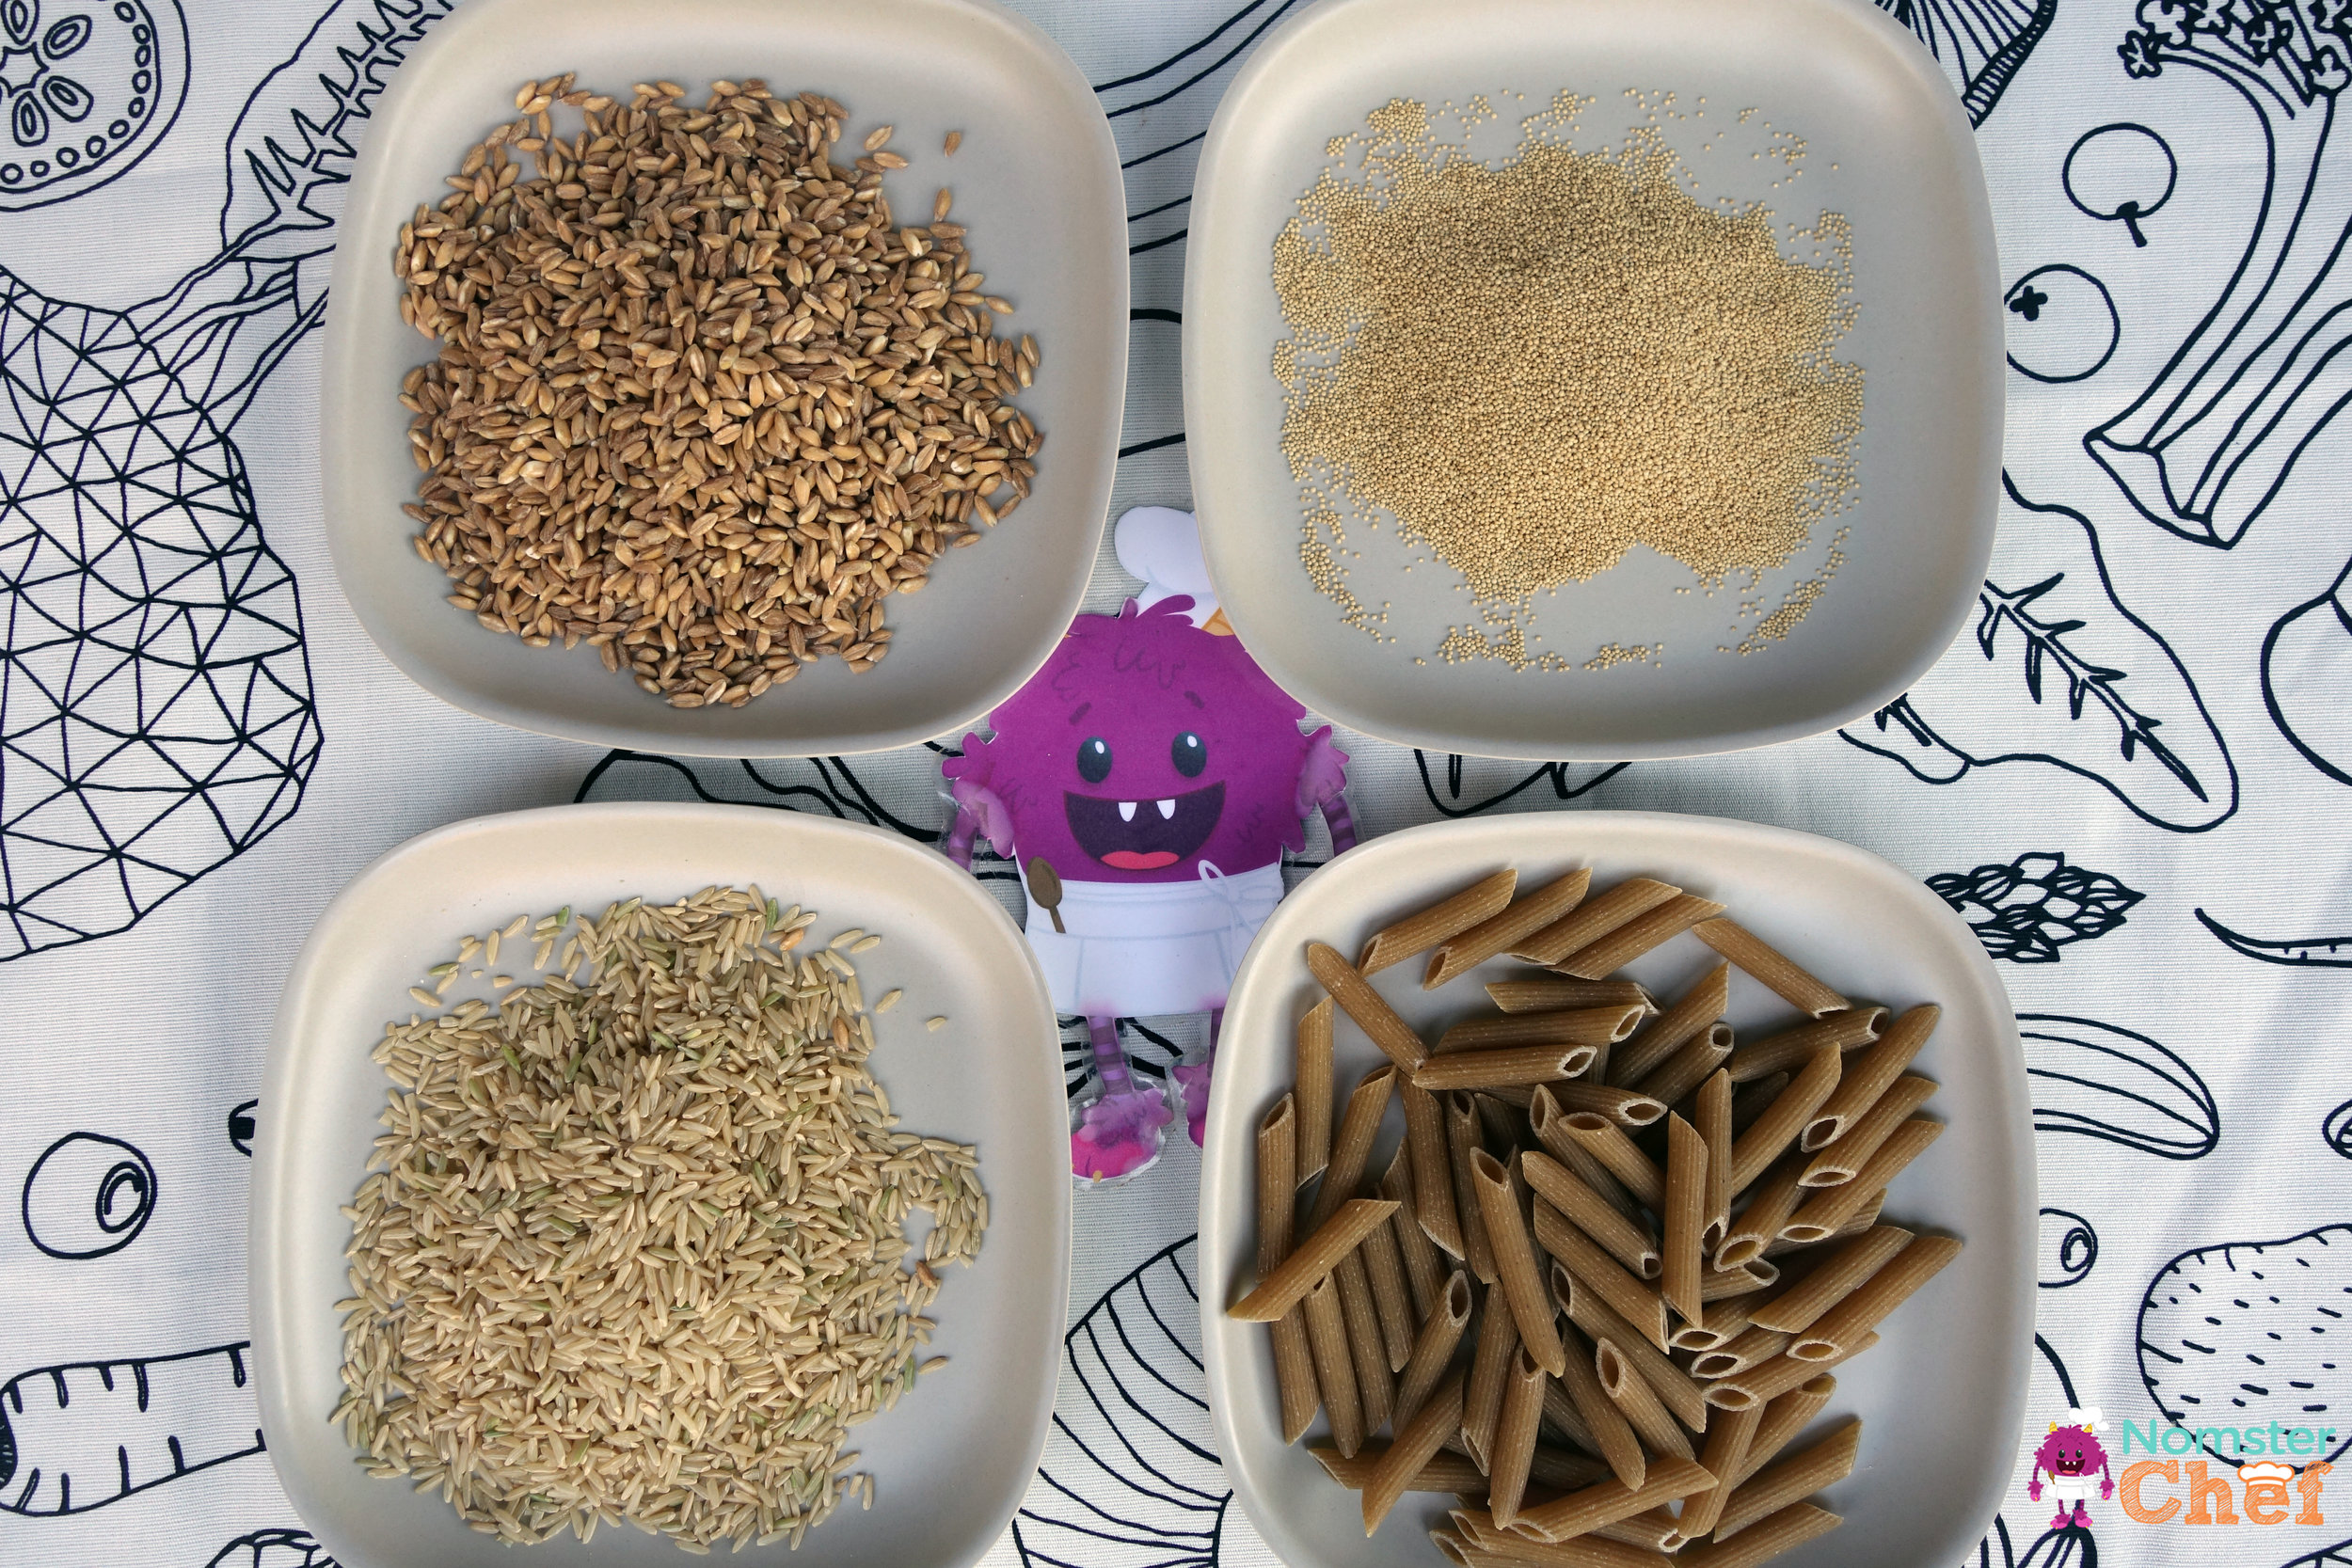 why-whole-grains-are-great-for-kids-nomster-chef-farro-amaranth-brown-rice-whole-wheat-pasta